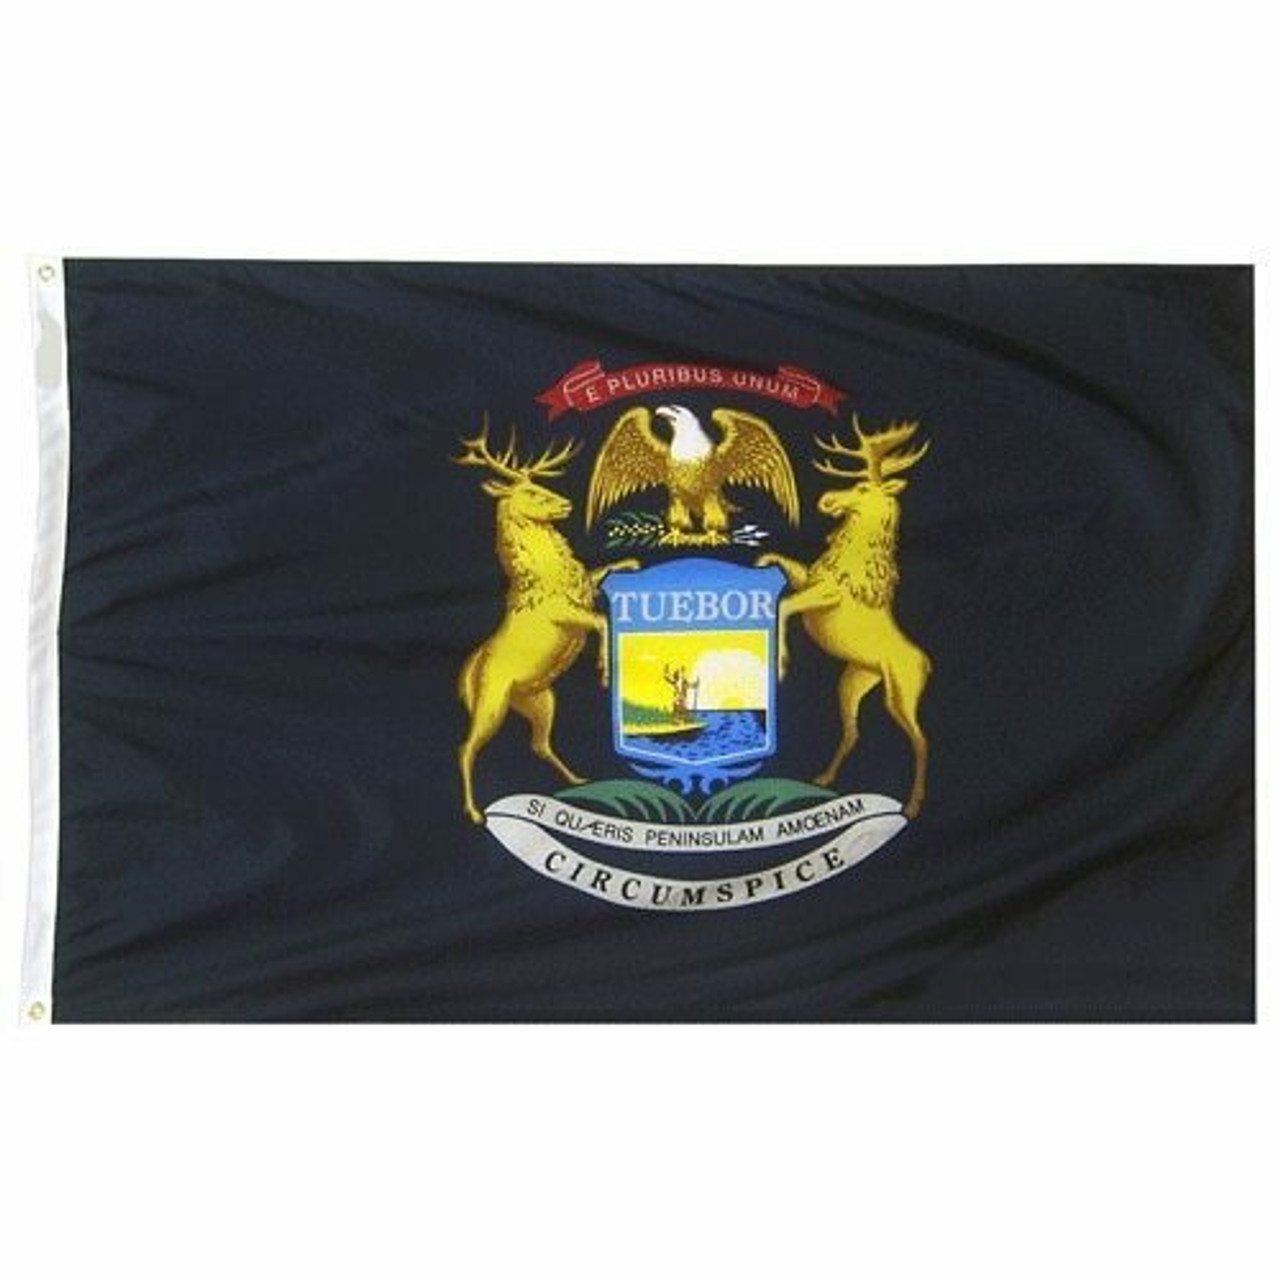 """The Michigan flag consists of the coat of arms of Michigan on a blue field. The coat of arms' dark blue shield features the Sun rising over a lake and peninsula and a man holding a long gun with a raised hand, representing peace and the ability to defend his rights. The brown elk and moose are symbols of Michigan, while the bald eagle represents the United States.  The design features three Latin mottos. From top to bottom they are:  On the red ribbon: E Pluribus Unum, """"Out of many, one,"""" a motto of the United States On the blue shield: Tuebor, """"I will defend"""" On the white ribbon: """"Si Quæris Peninsulam Amœnam Circumspice, """"If you seek a pleasant peninsula, look about you,"""" which is the official state motto.   On the left edge of the flag is a durable canvas header with brass grommets for attaching to flagpoles."""